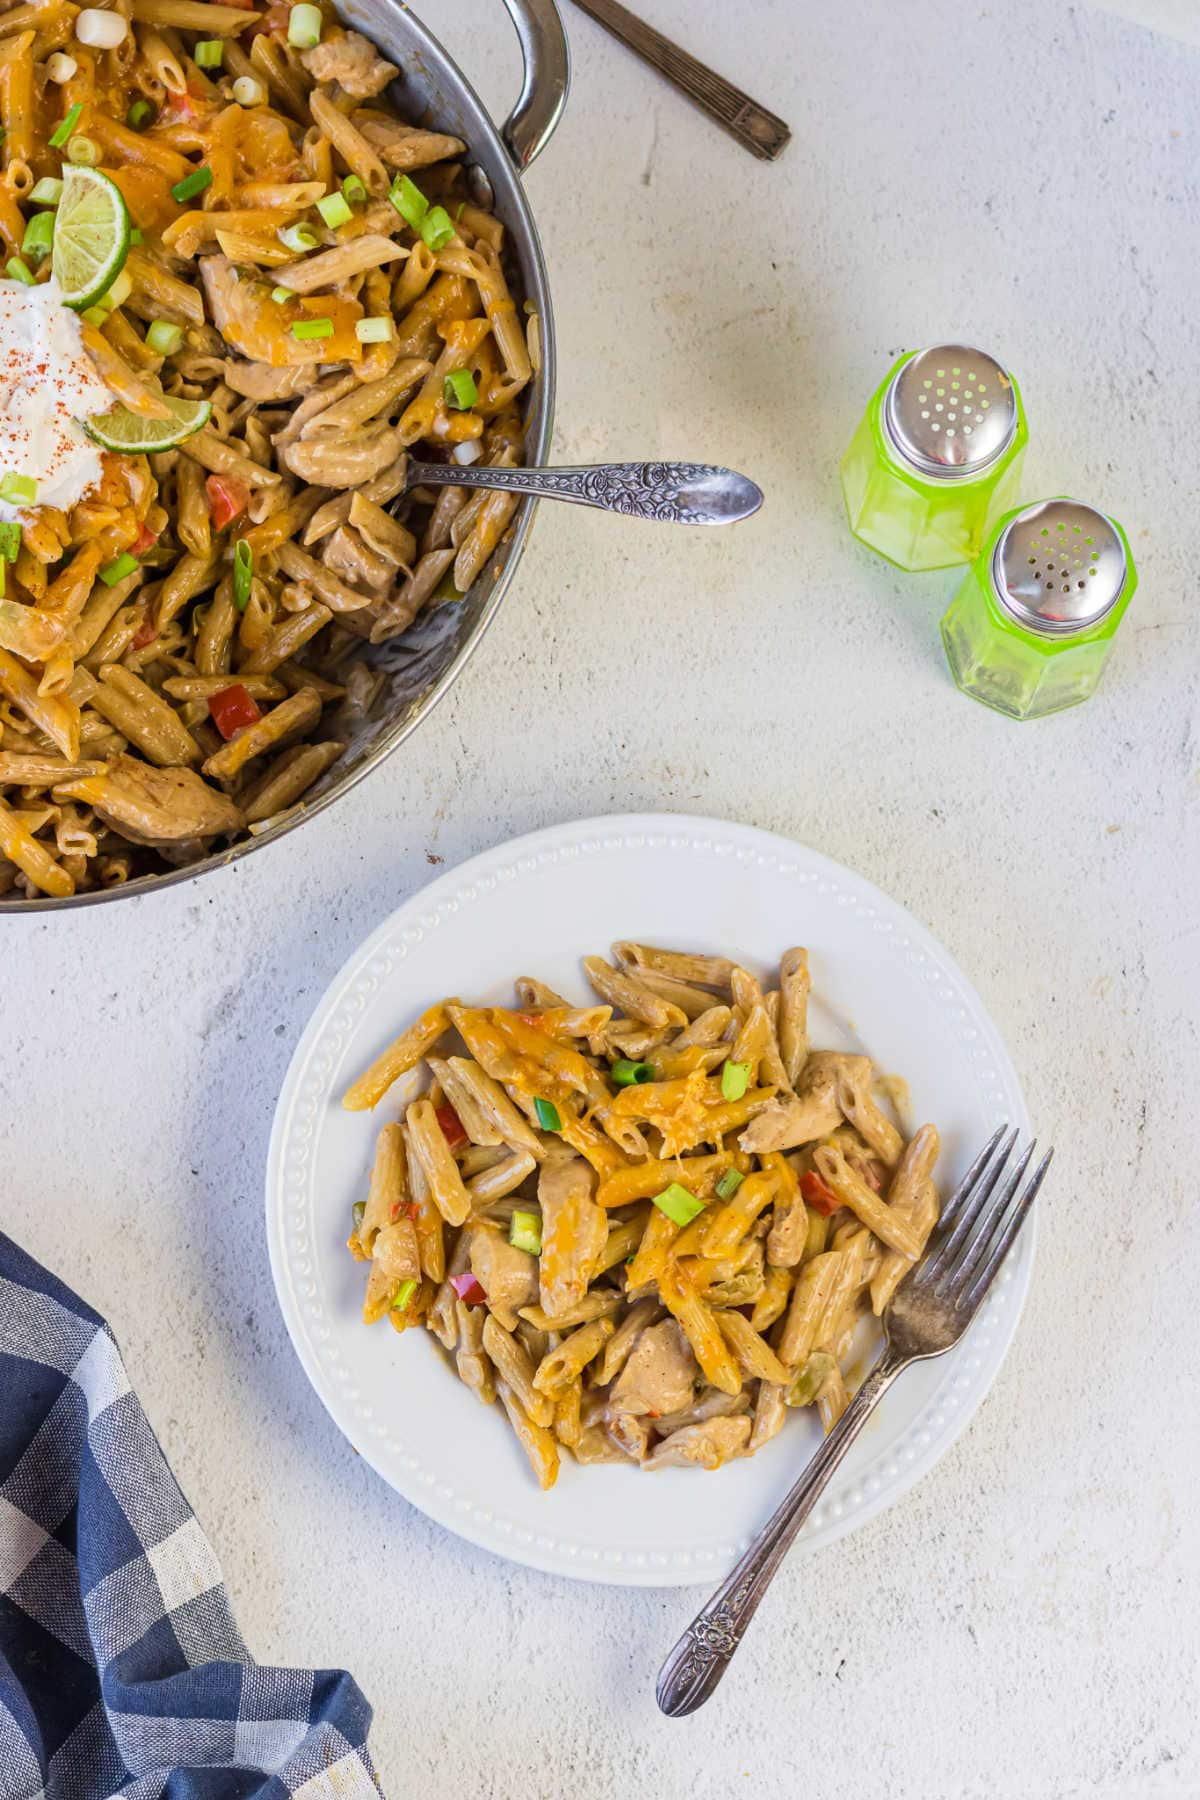 Overhead view of a serving of chicken fajita pasta on a plate.